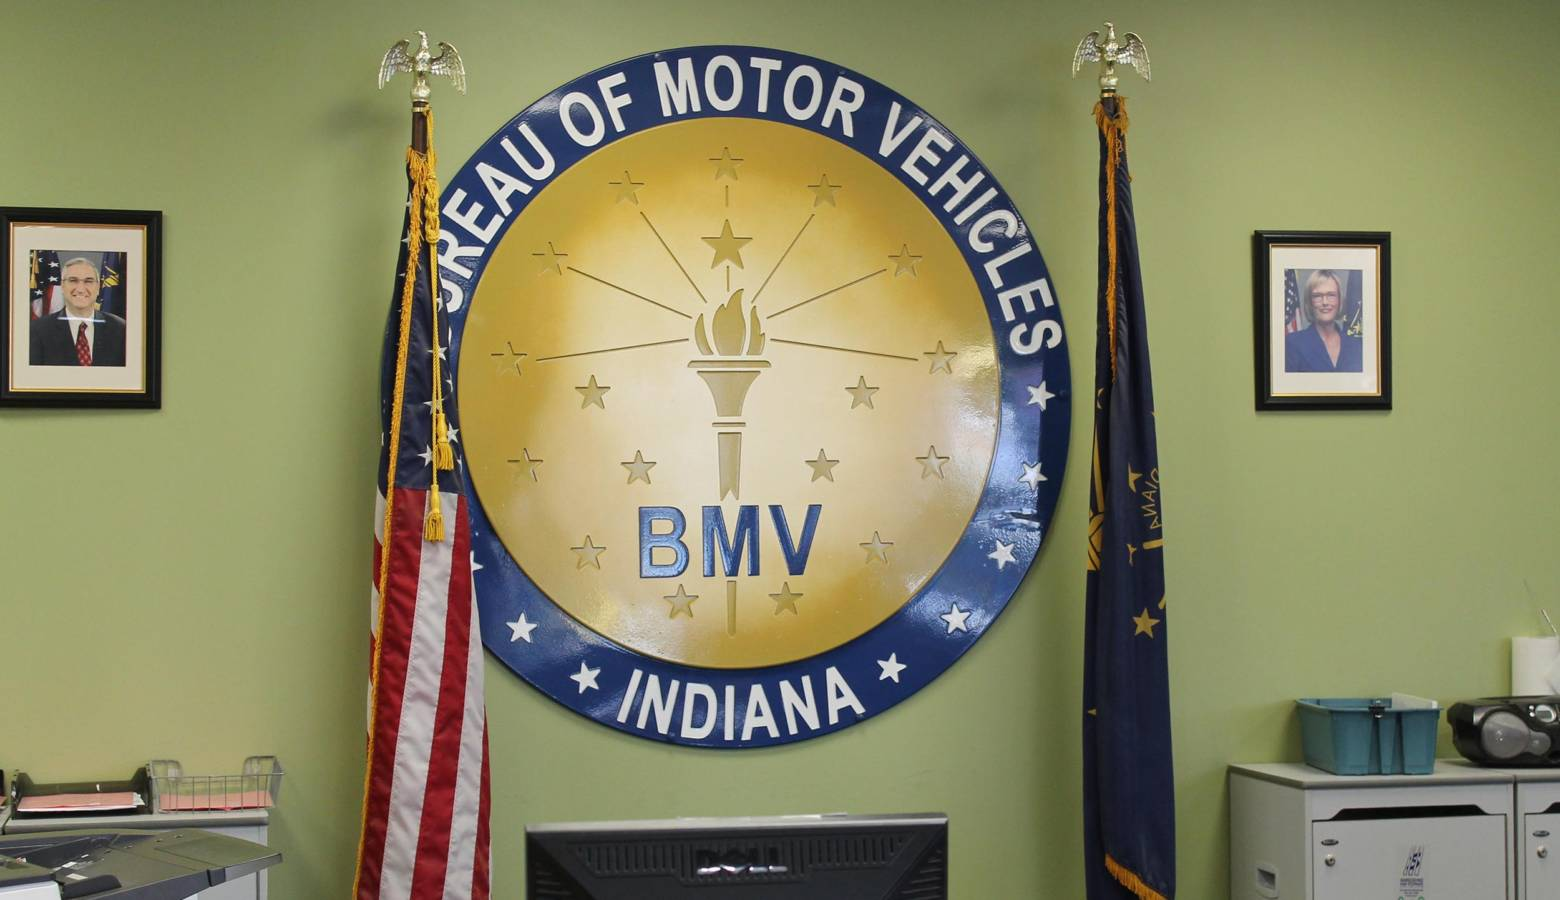 The Trump administration wants states to hand over that info after federal courts denied its push to add a citizenship question to the upcoming census. The Indiana BMV has declined that request. (Lauren Chapman/IPB News)